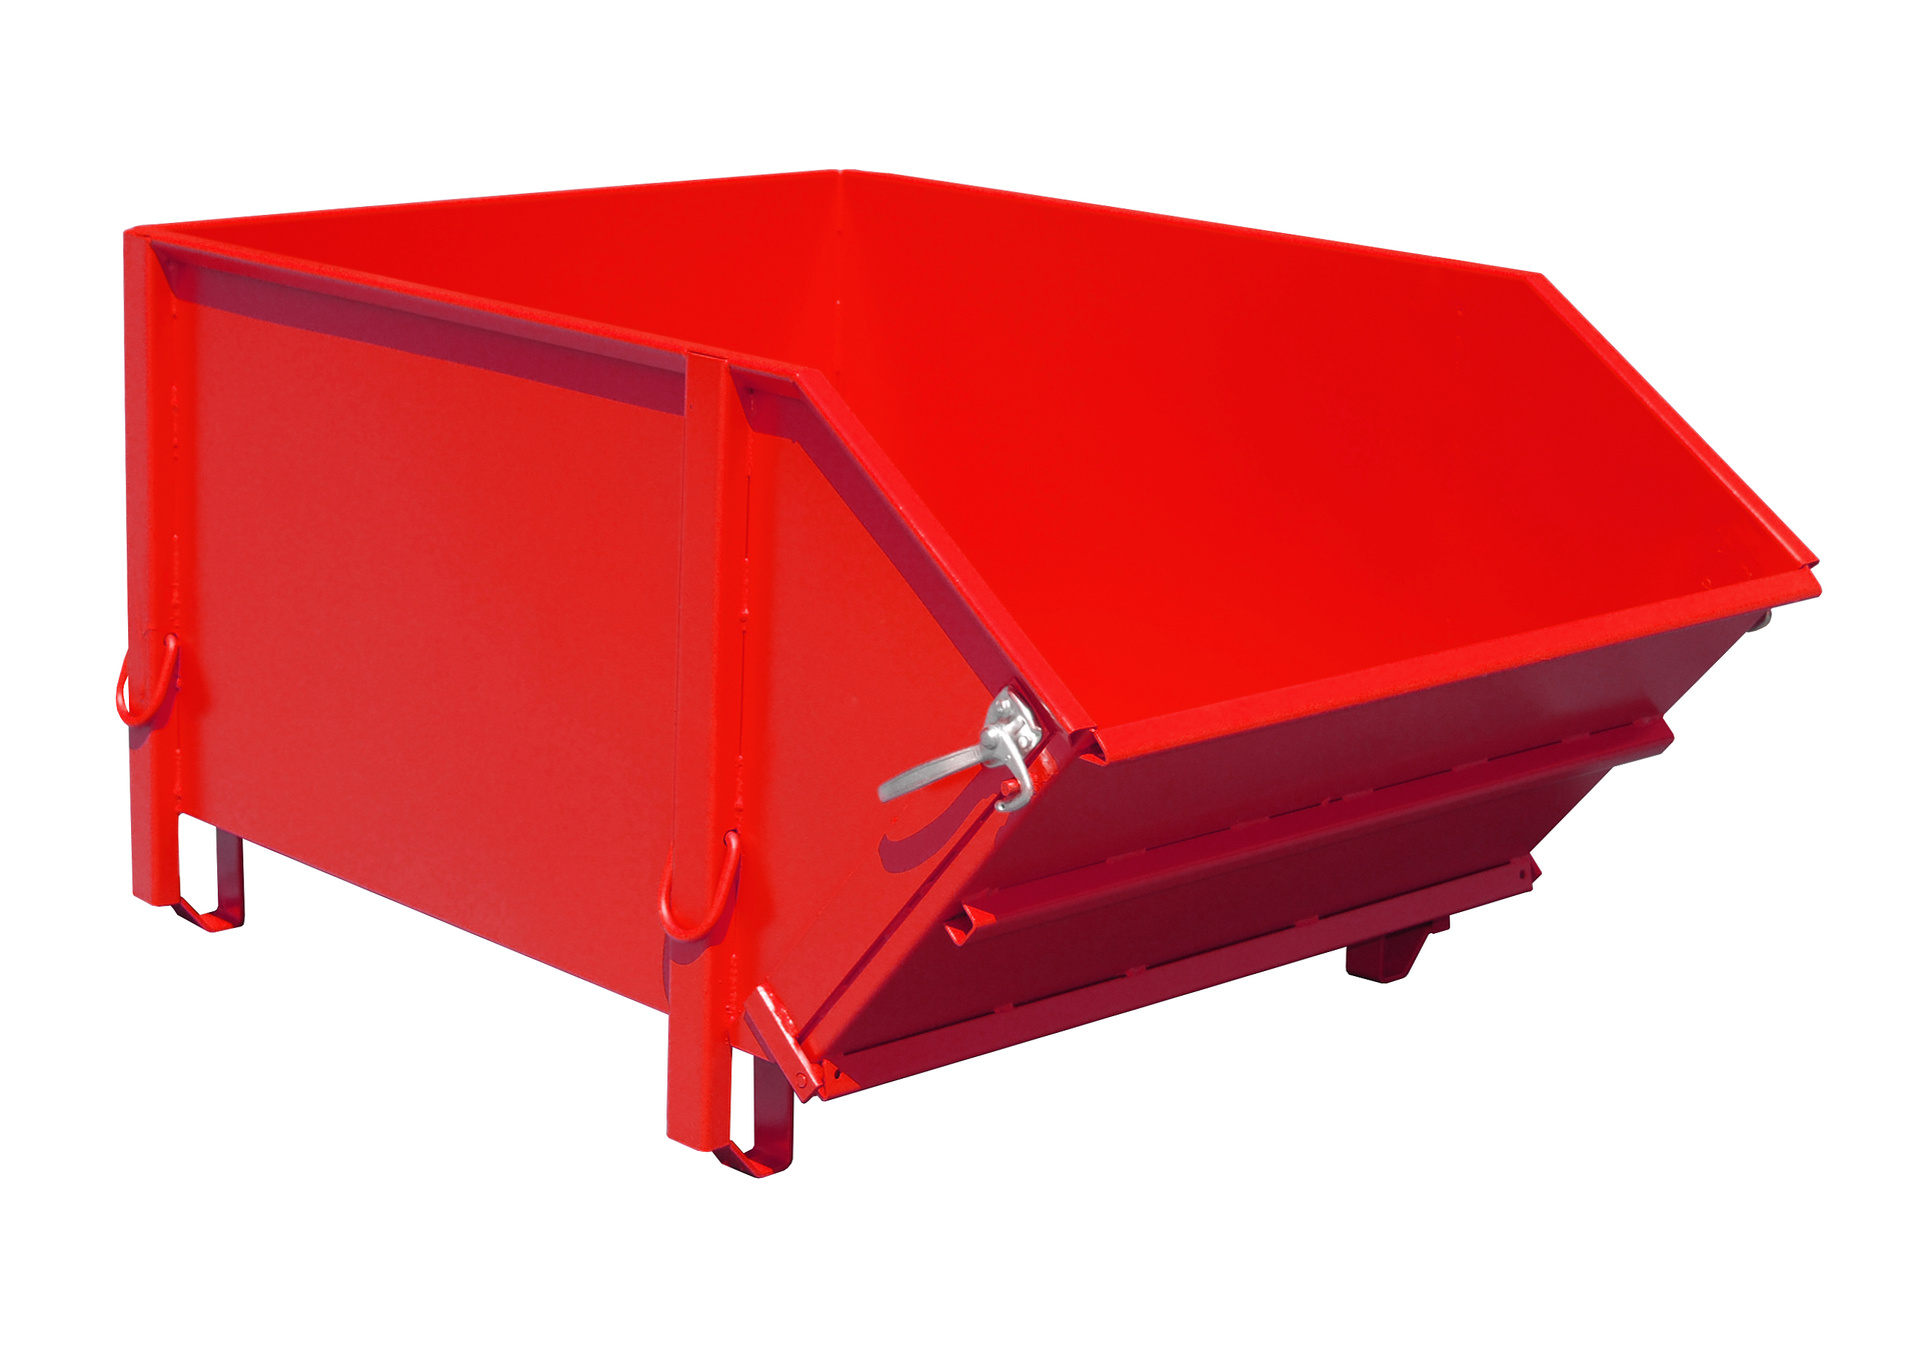 Bauer Südlohn® BBK building material container, with foldable shaft wall